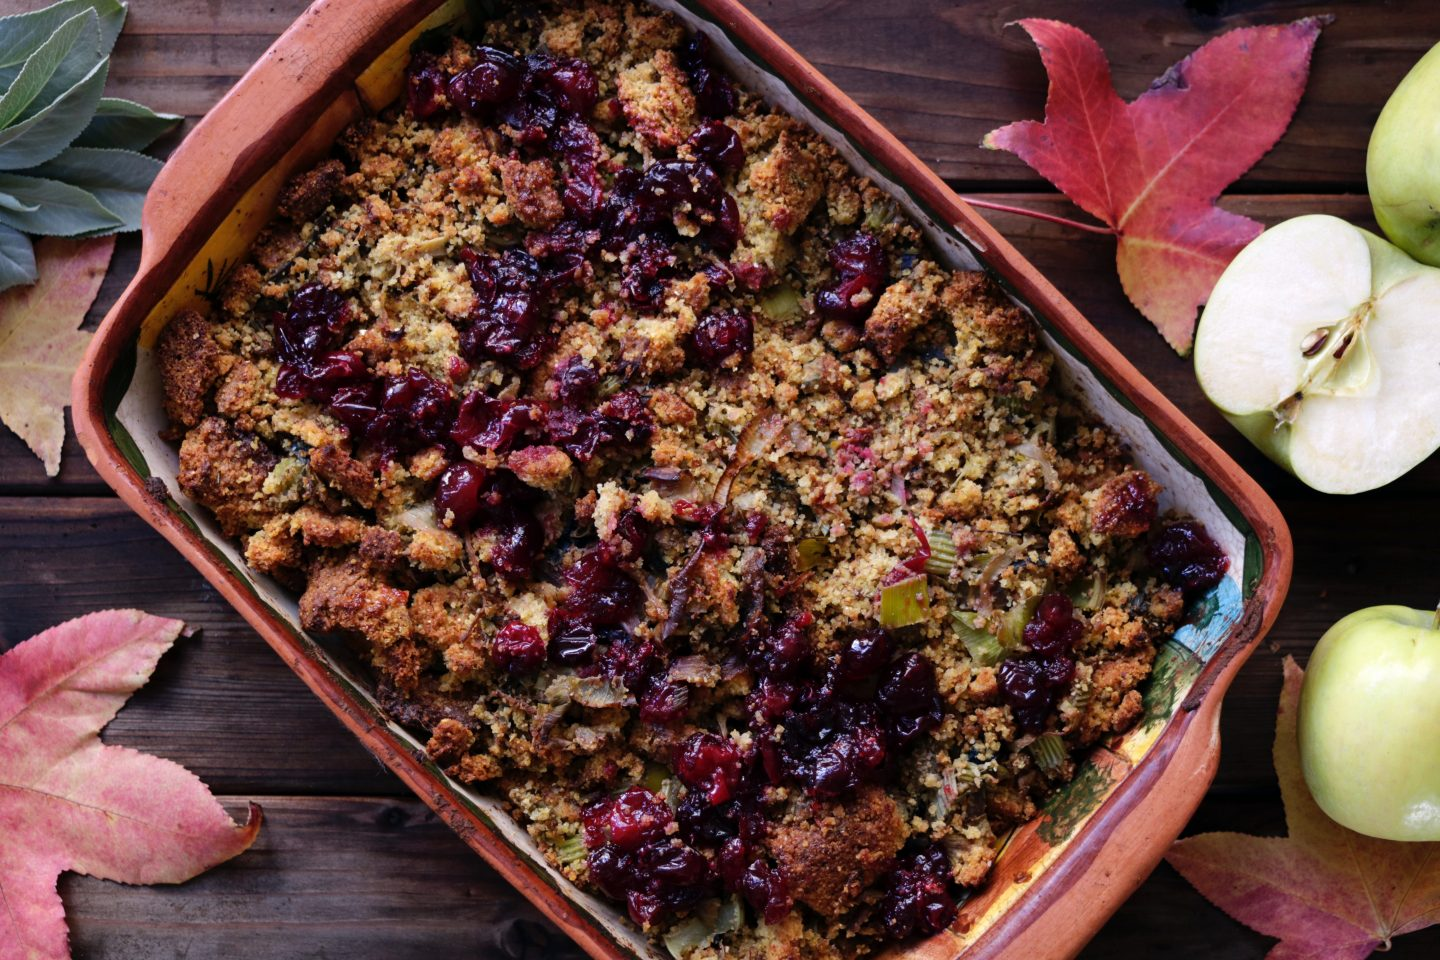 plum and apple crumble in a dish